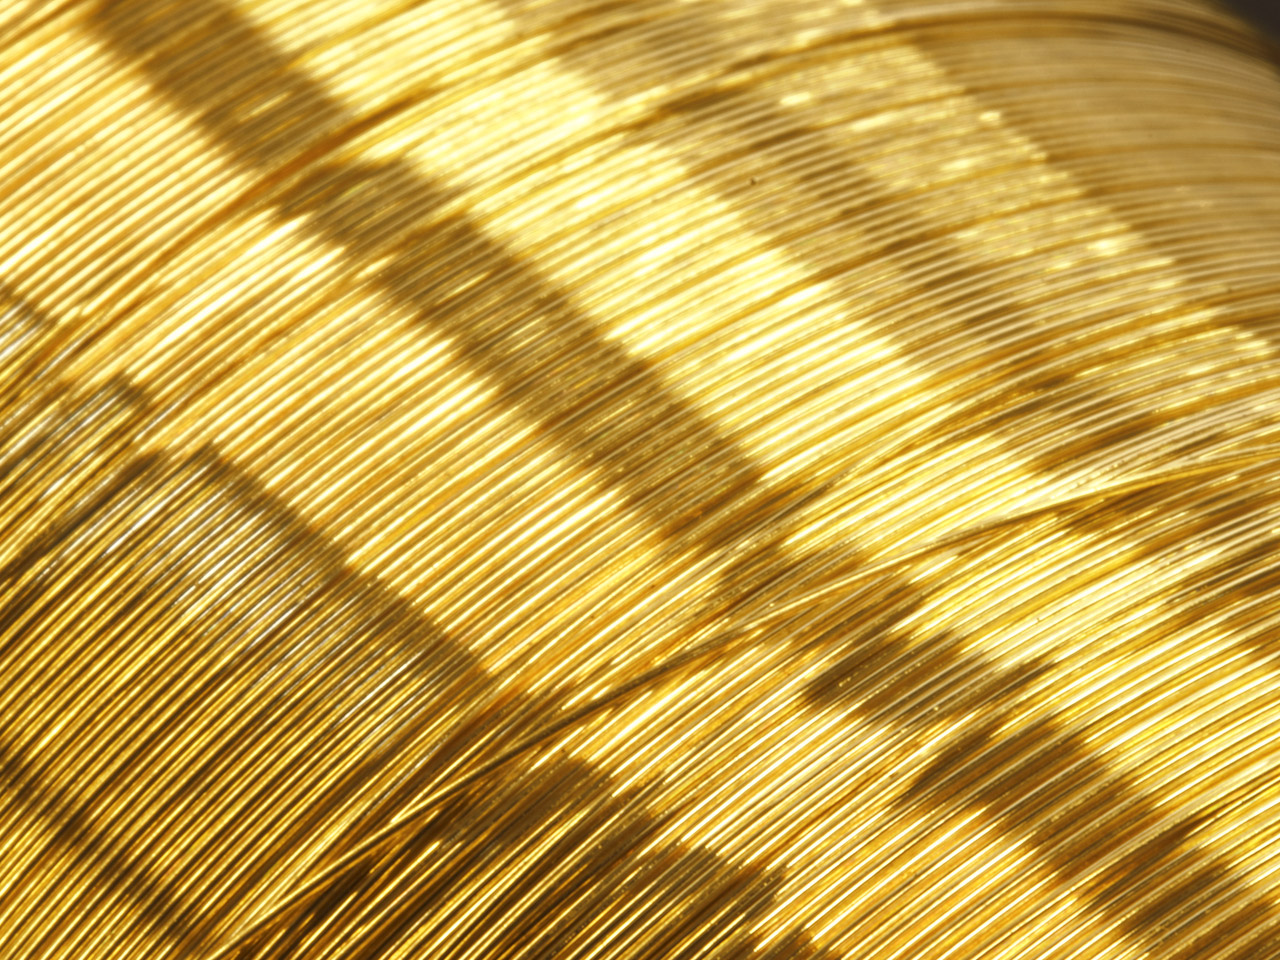 Q9999 Fine Gold Wire 0.50mm Fully Annealed Reels - cooksongold.com